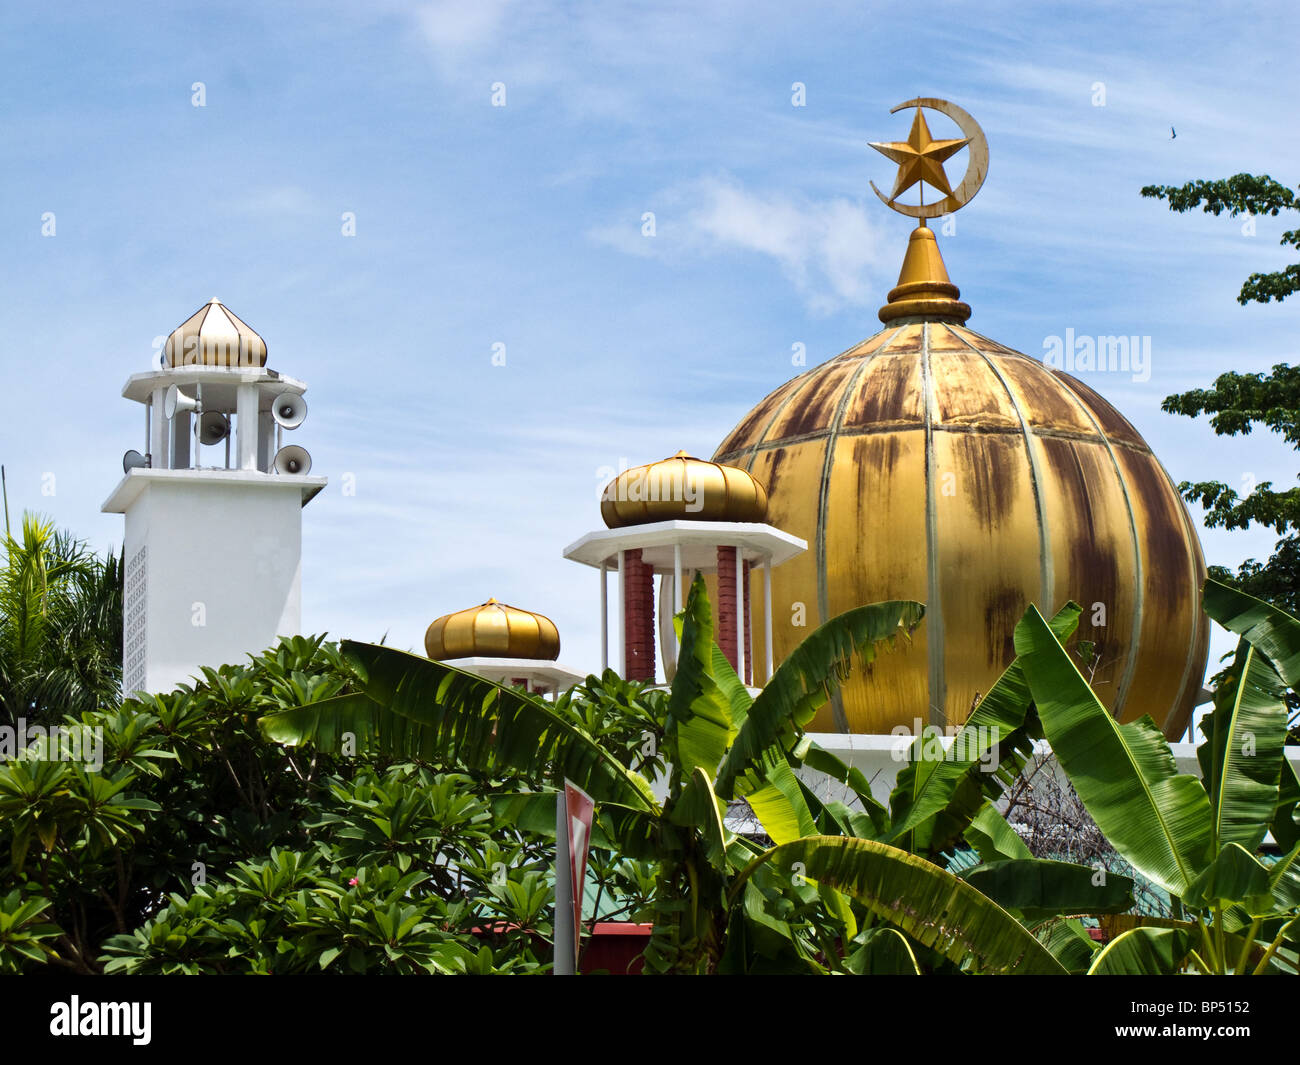 Sabah state Mosque in Kota Kinabalu Sabah largest domed roof in Malaysia - Stock Image